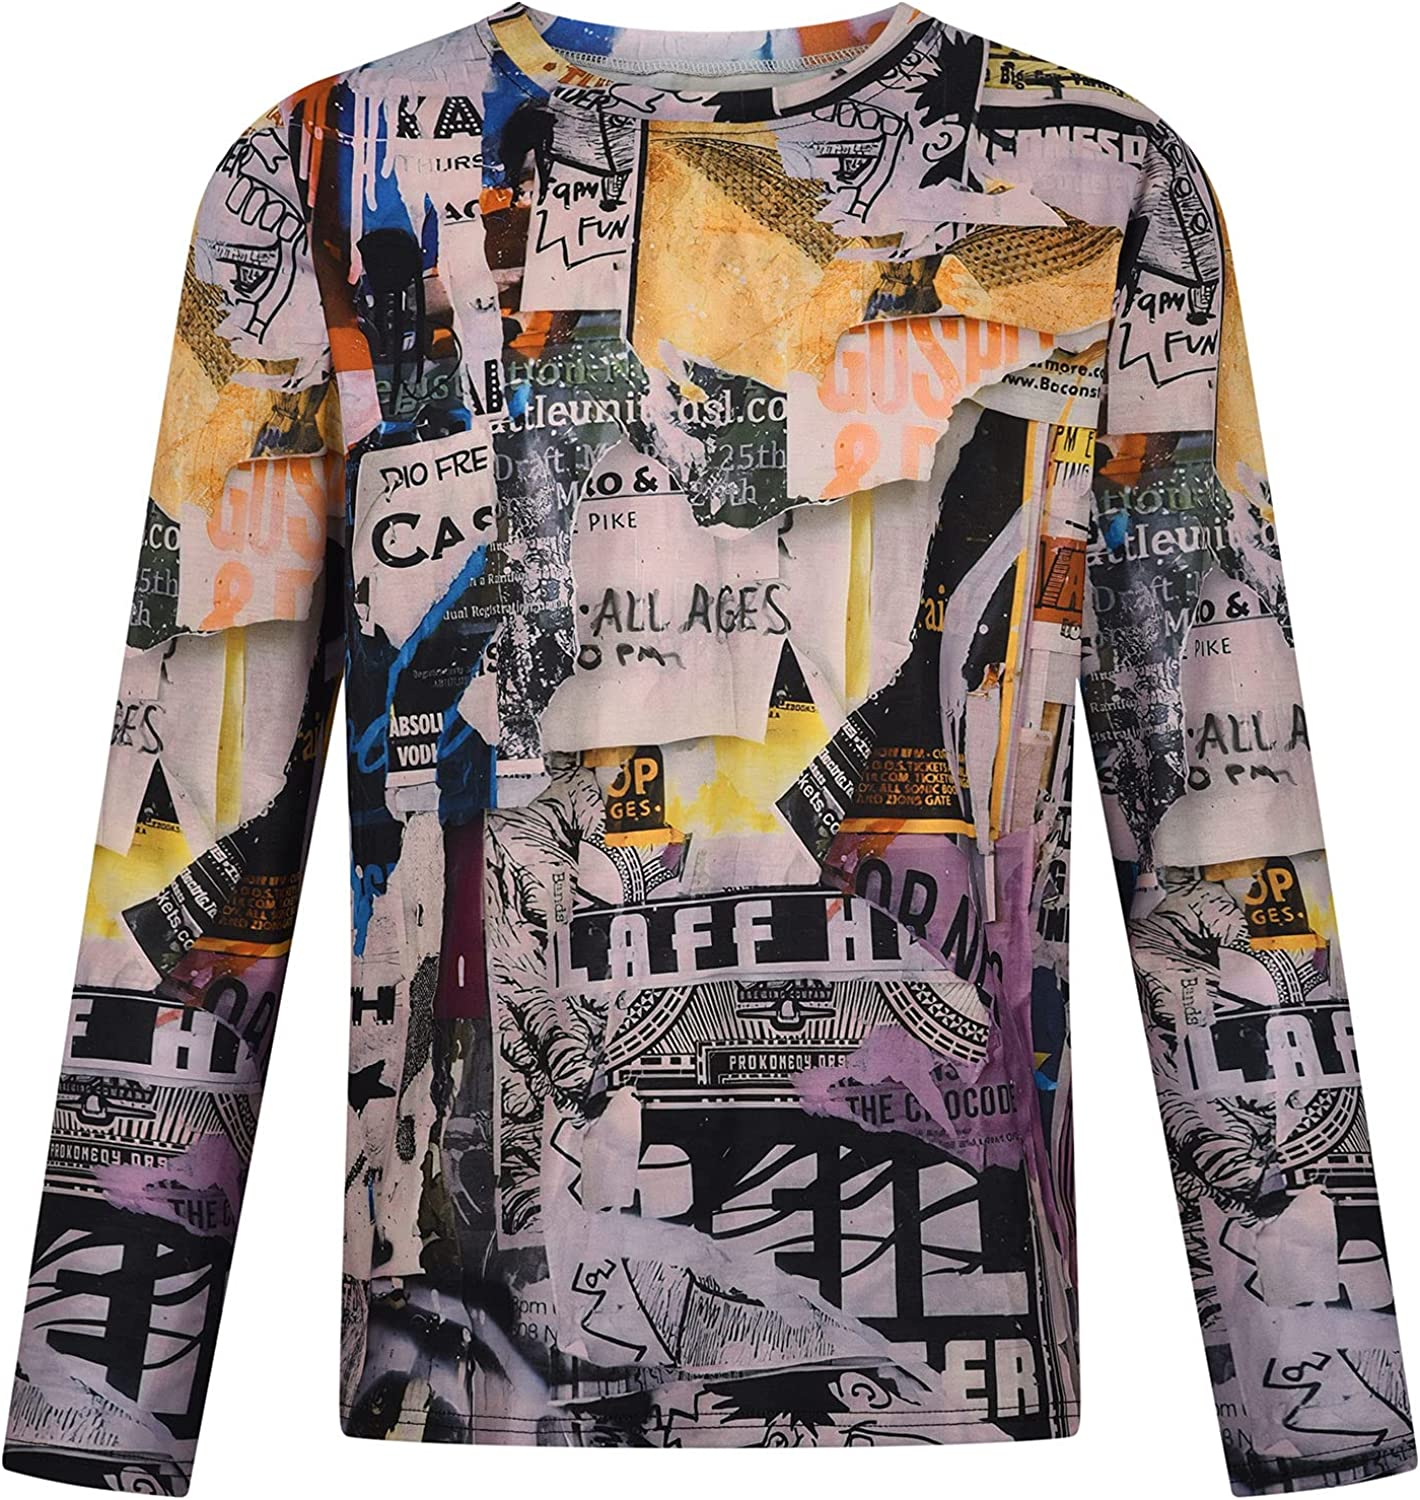 Men's Long Sleeve T-Shirt Fashion Printing Color Graphic Round Neck Casual Tee Soft Comfortable Slim Fit Top